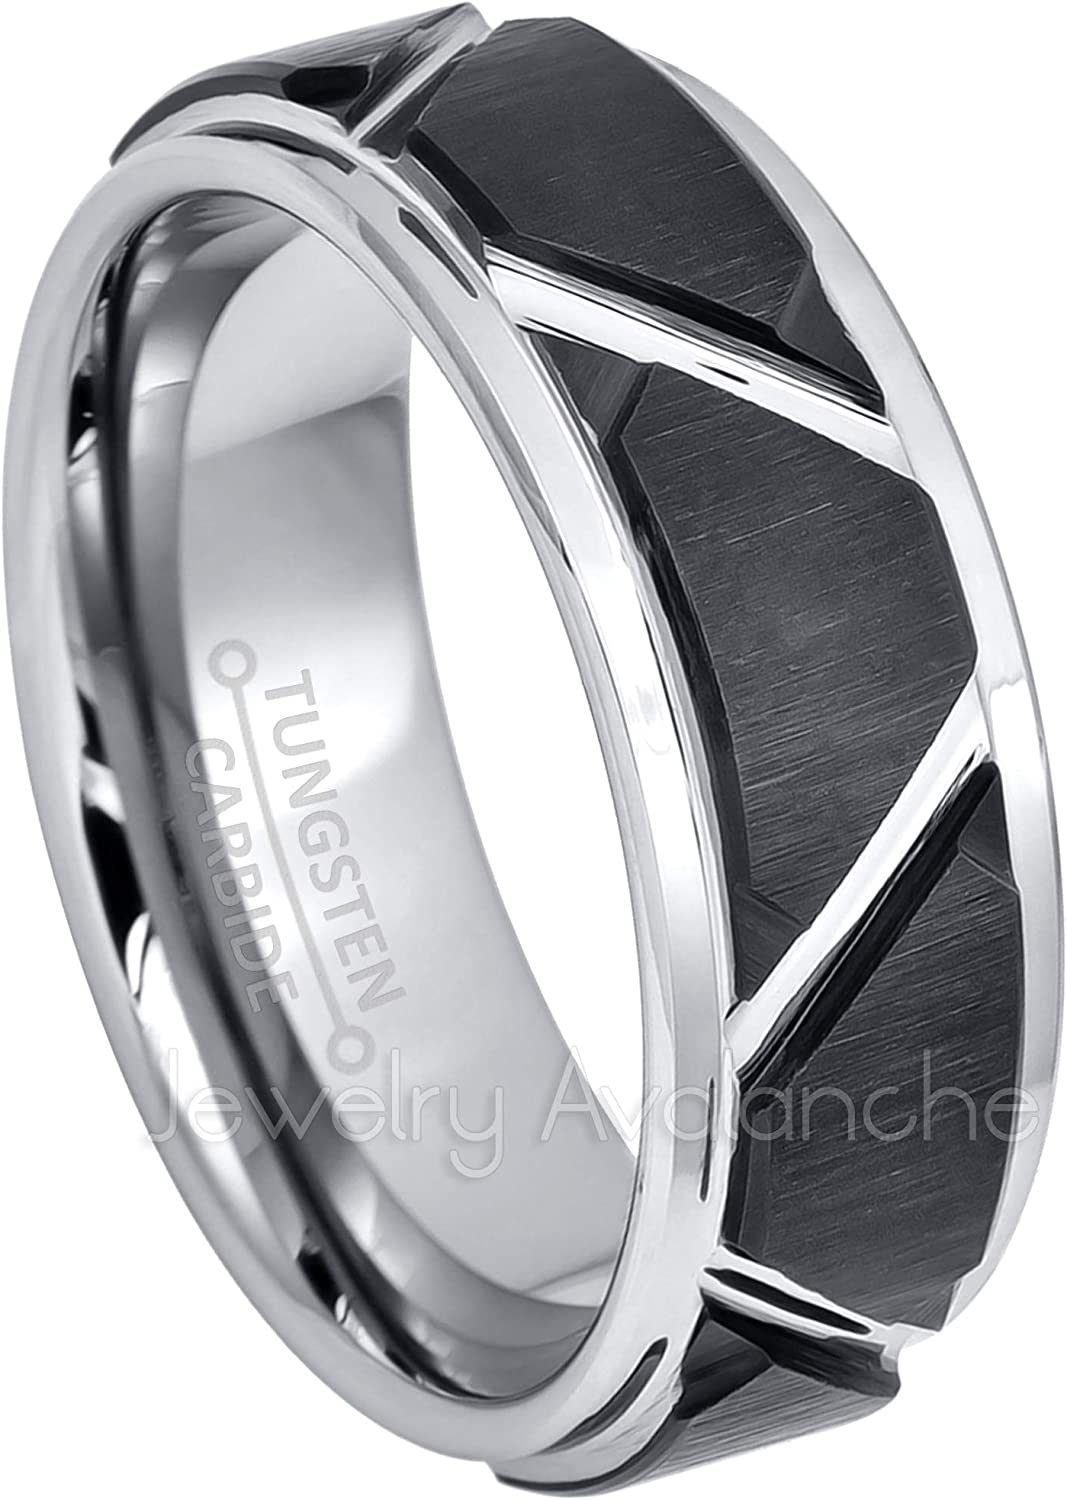 Safety and trust Jewelry Avalanche Selling rankings 2-Tone Pipe Cut Tungsten Wedding - Br 8mm Band